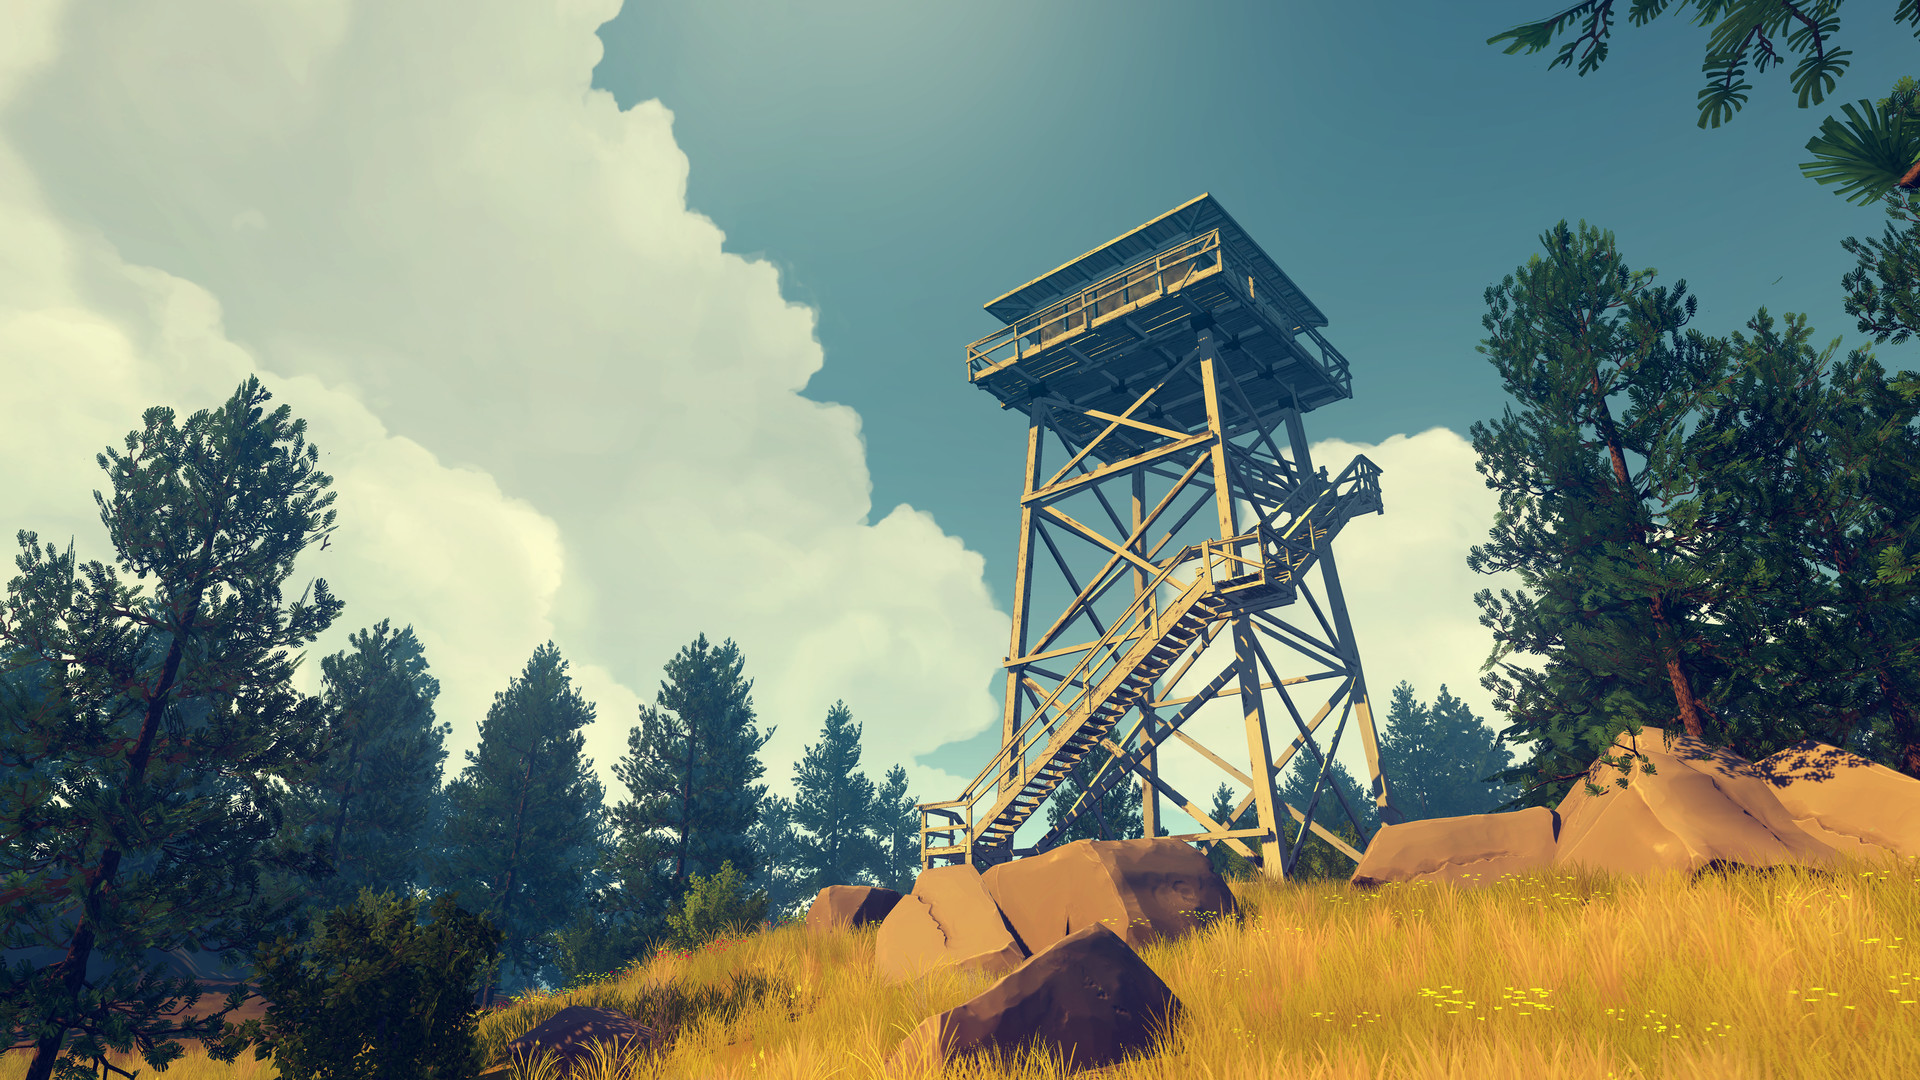 Camp Santo purchased by Valve, current project still alive